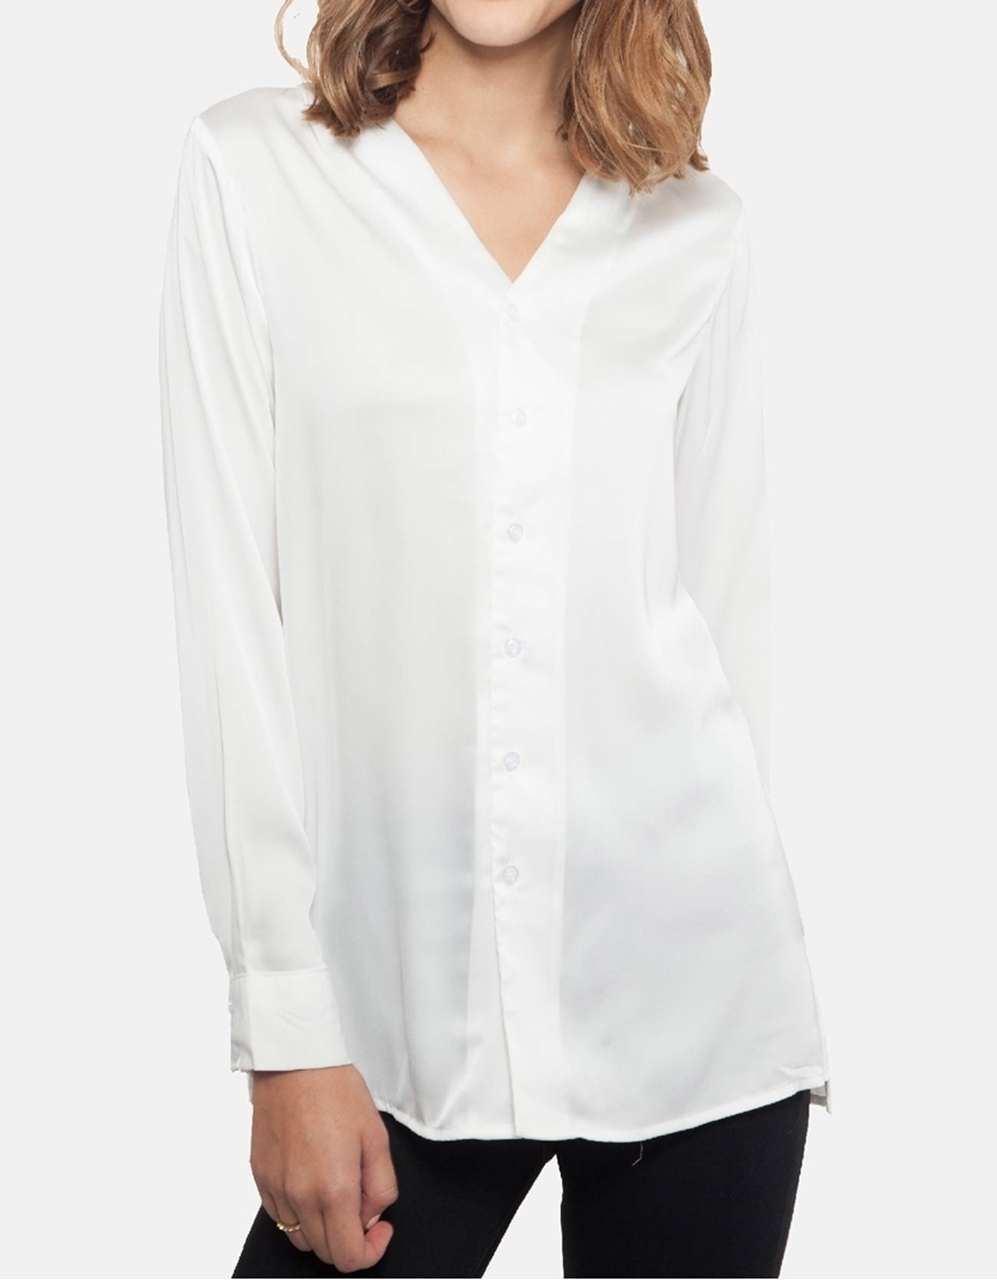 Picture of Lexie Satin-Silk Blouse in Ivory White